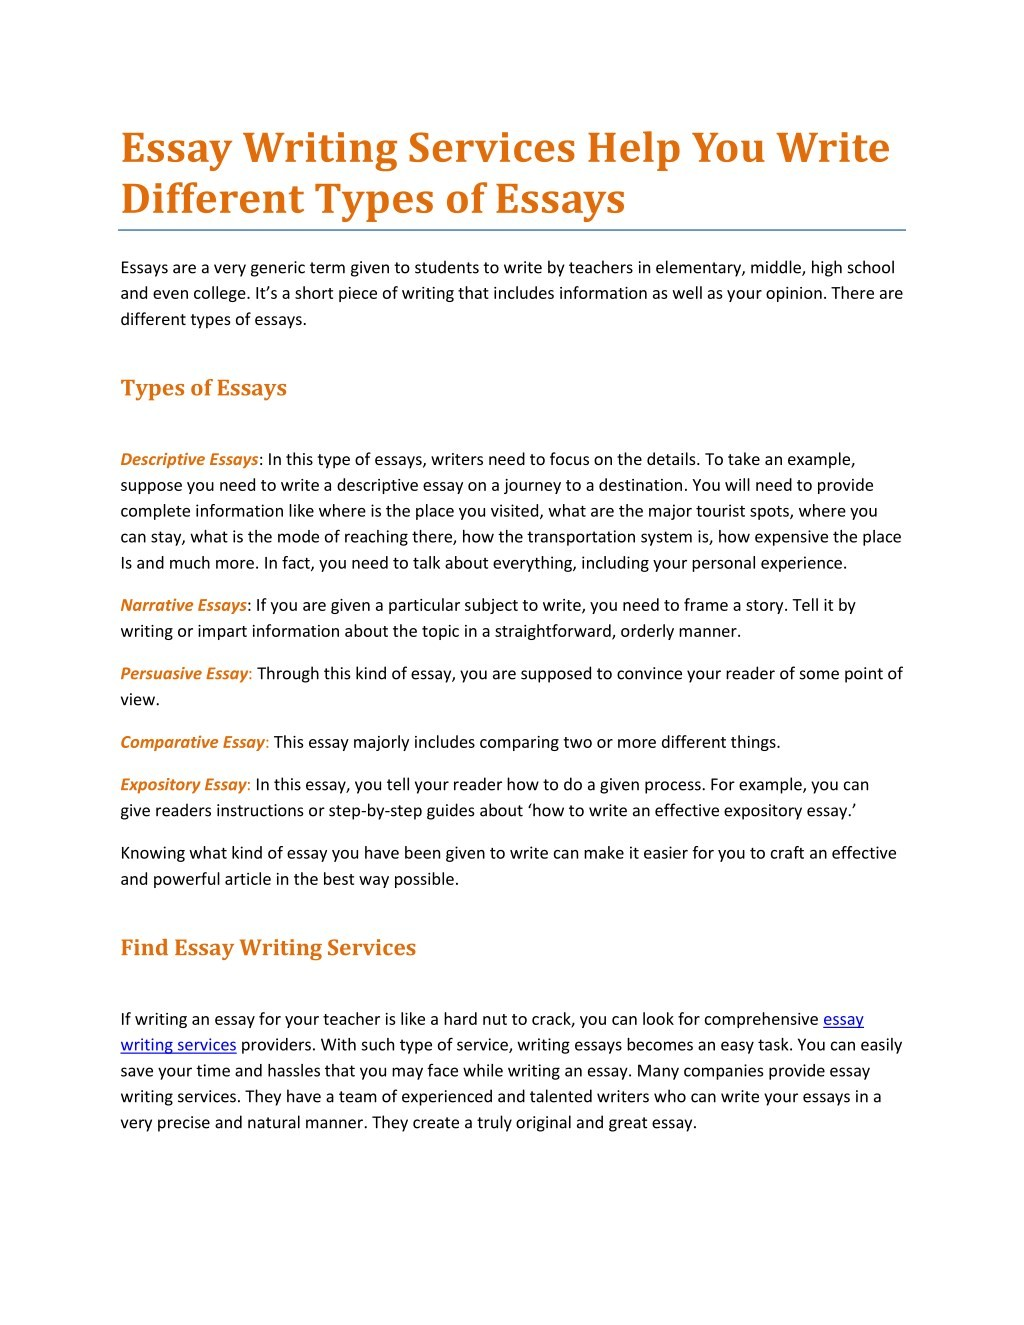 003 Essay About Types Of Students Writing Services Help You Write Different L Breathtaking Classification On College Large